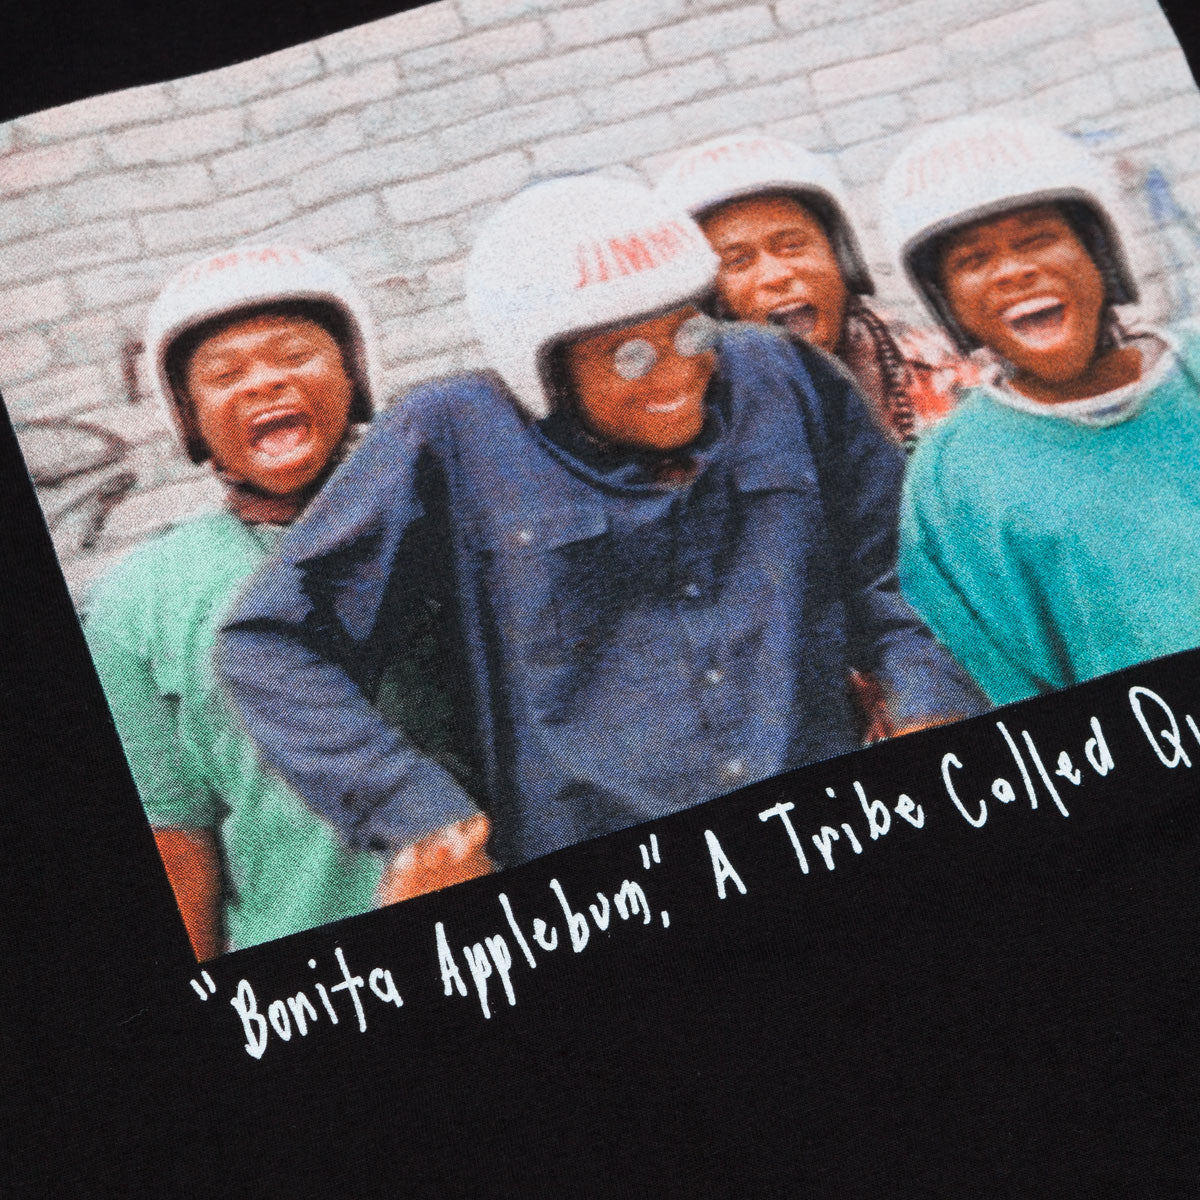 Stussy x ATCQ Bonita Applebum T-Shirt Black